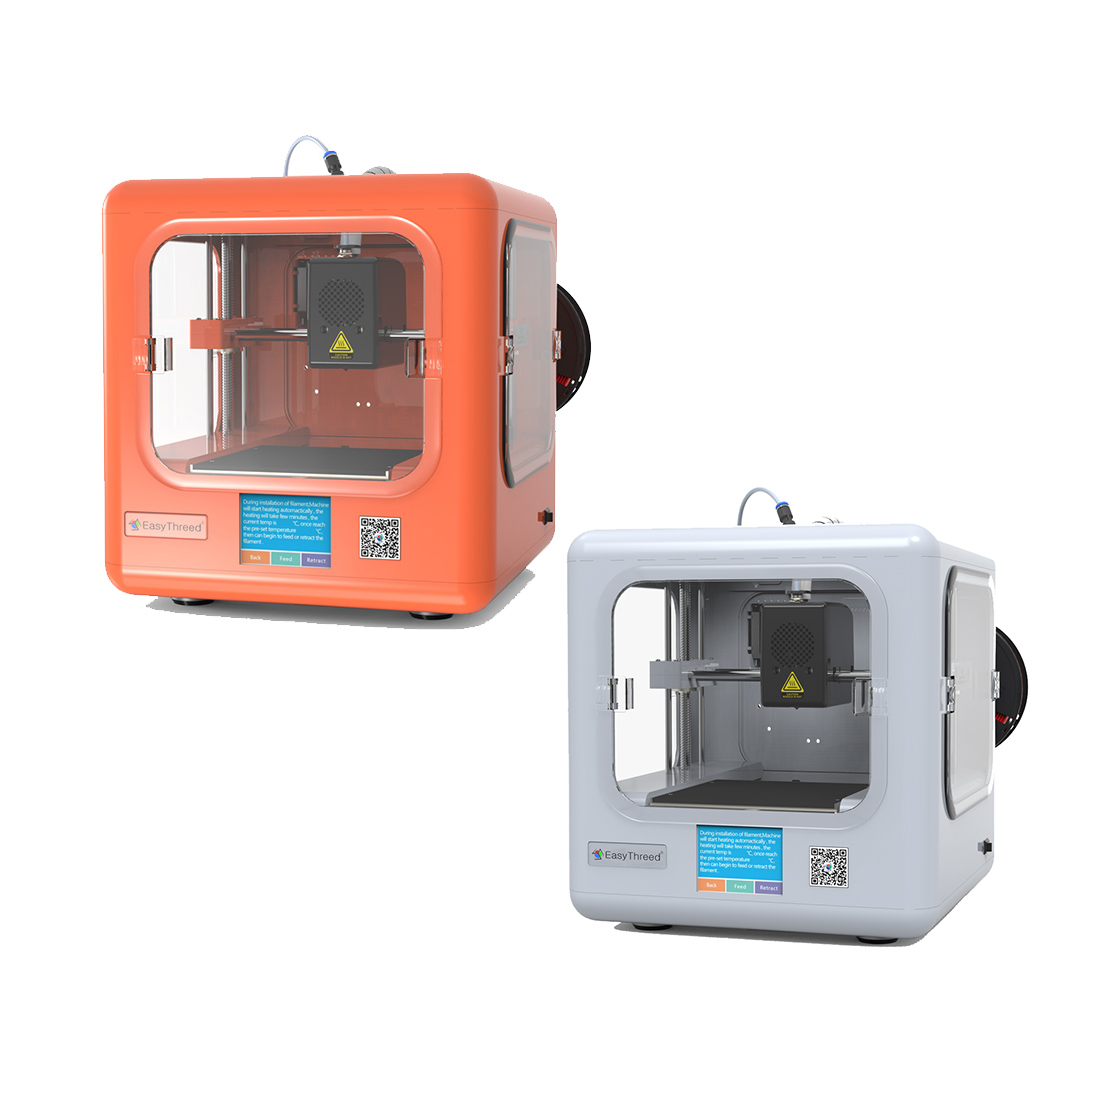 Easythreed ET-4000+ Upgraded Mini Preassembled 3D Printer with 2.8-inch LCD Touch Screen/CE Certificate 120*120*120mm Printing Size 1.75mm 0.4mm Nozzle